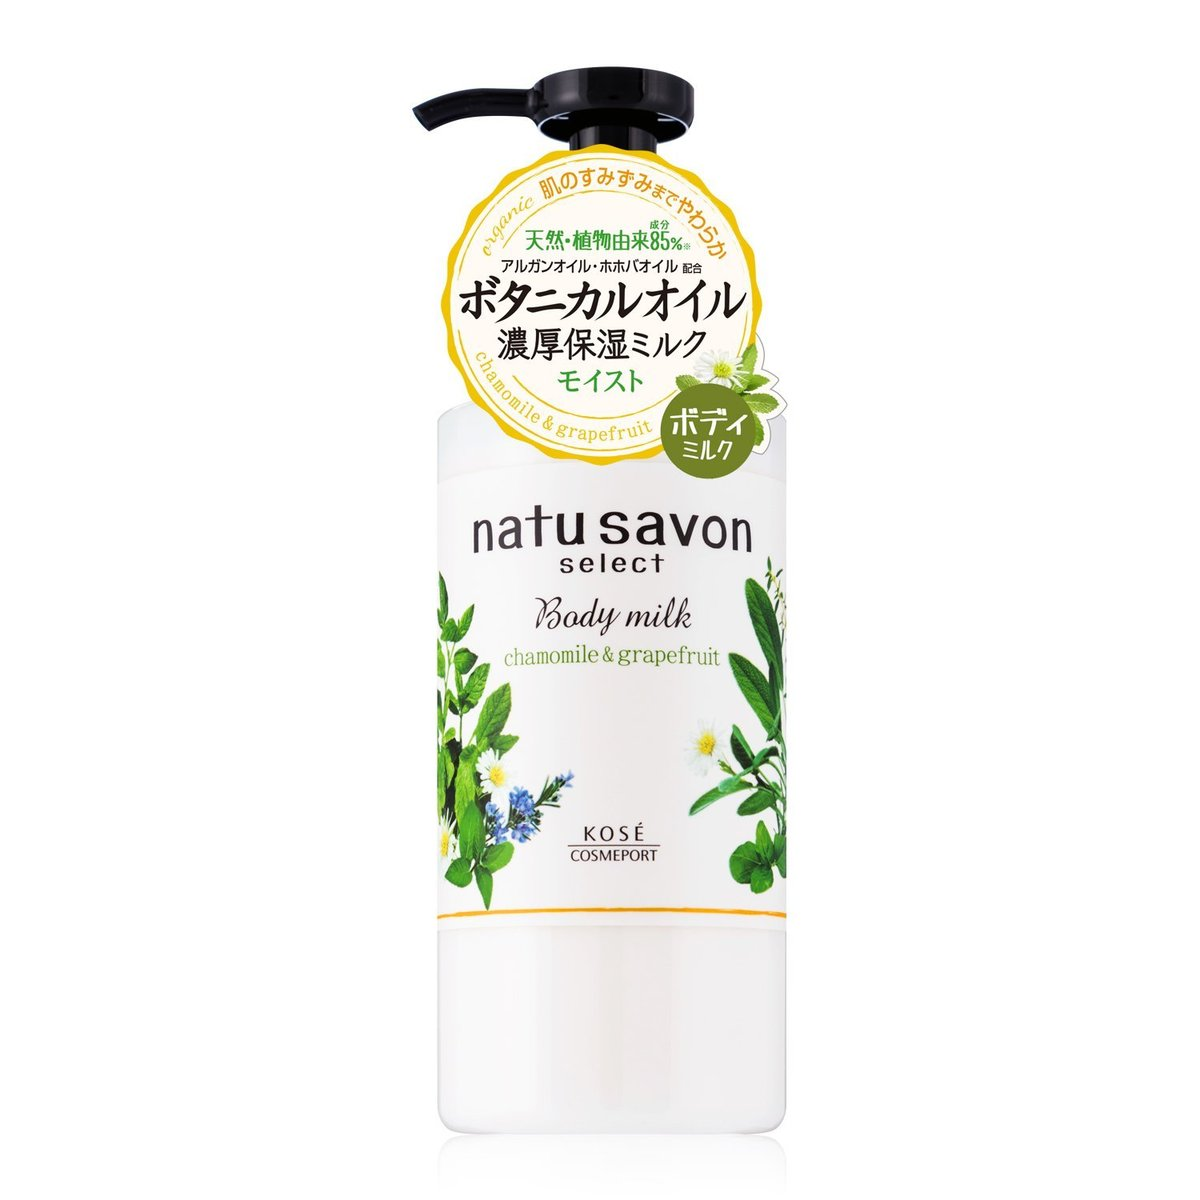 Kose Natu Savon Select Body Milk Chamomile & Grapefruit 230ml